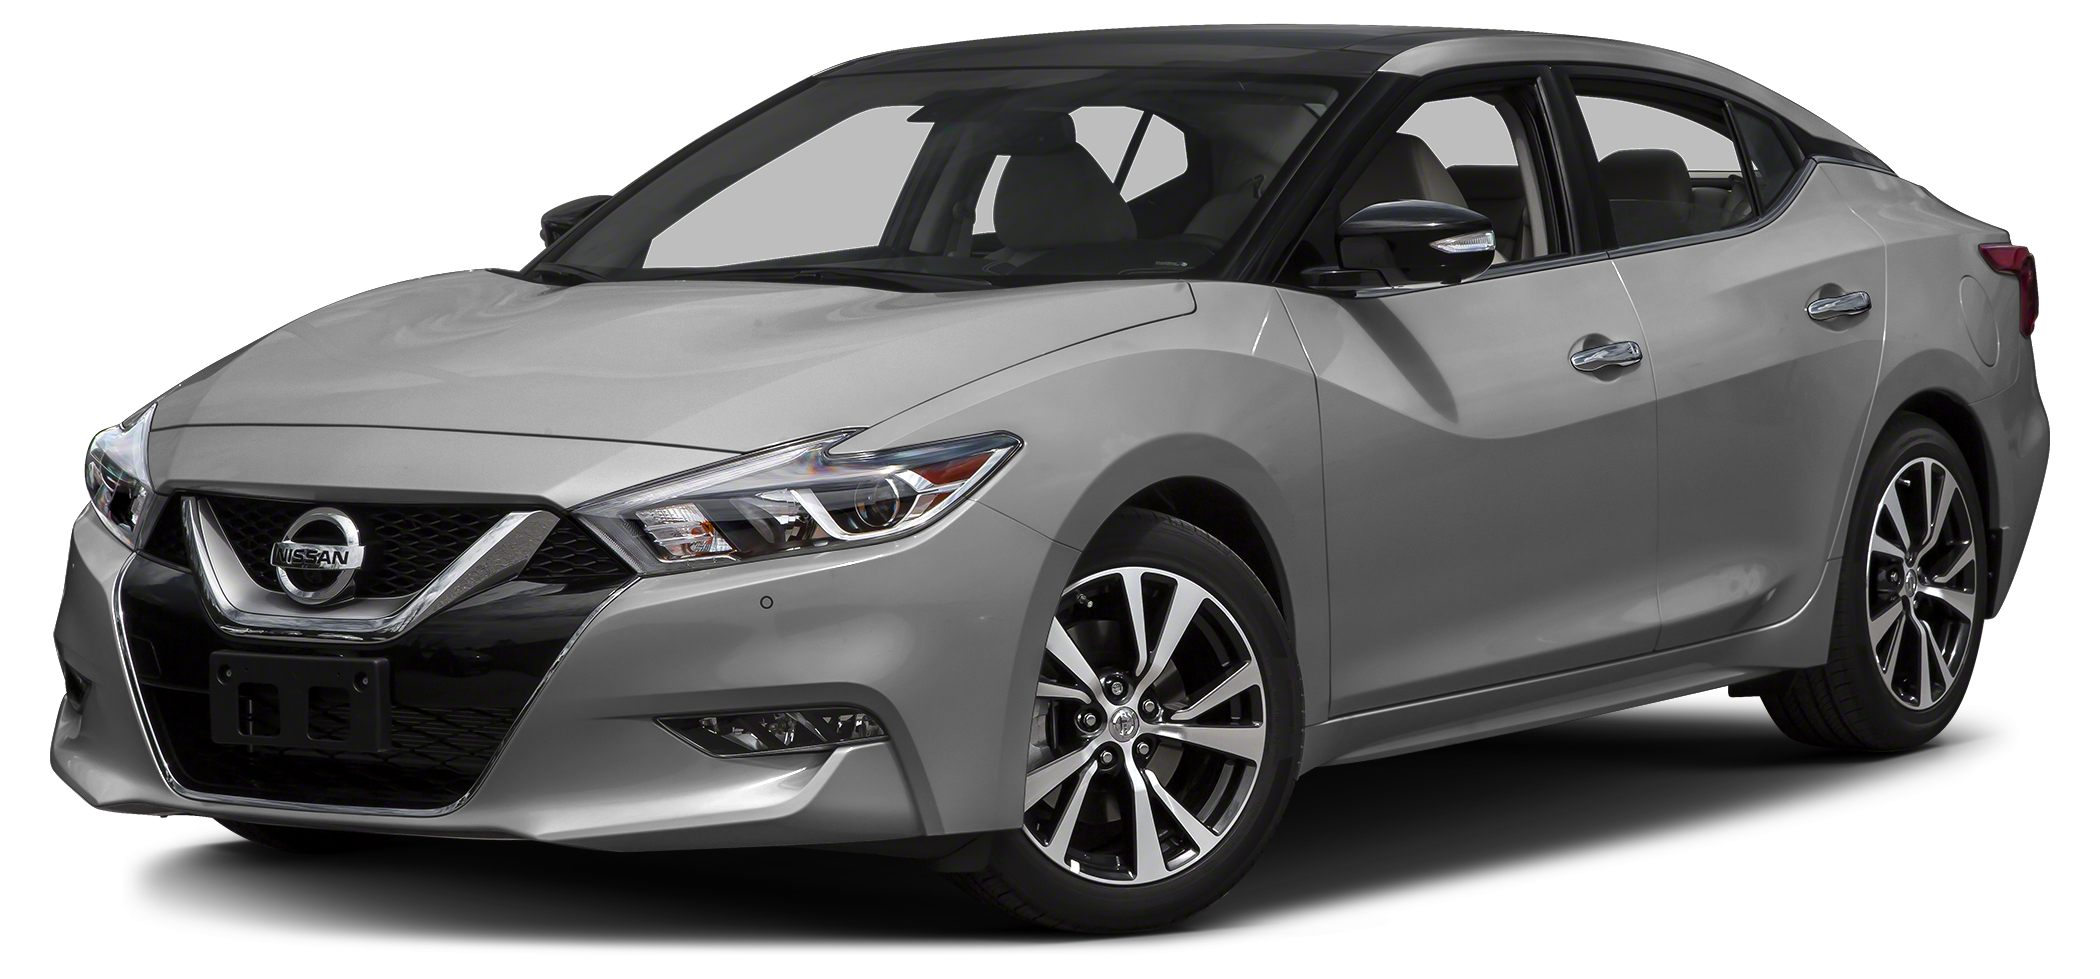 2017 Nissan Maxima 35 Platinum Priced to sell 4486 below MSRP -Great Gas Mileage- Navigation